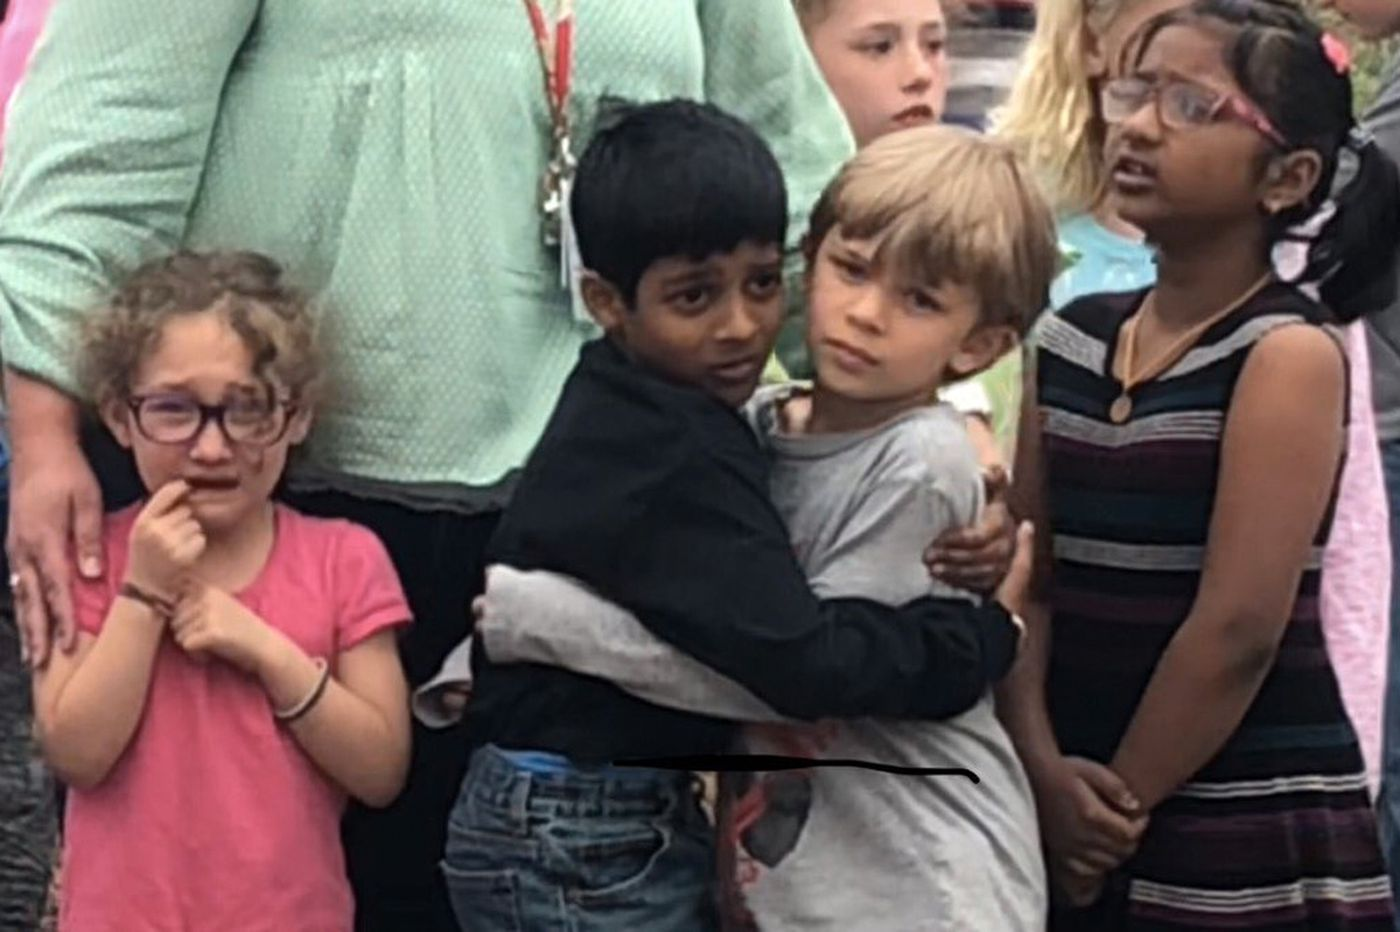 Viral image from Colorado school shooting shows young students embracing following deadly attack